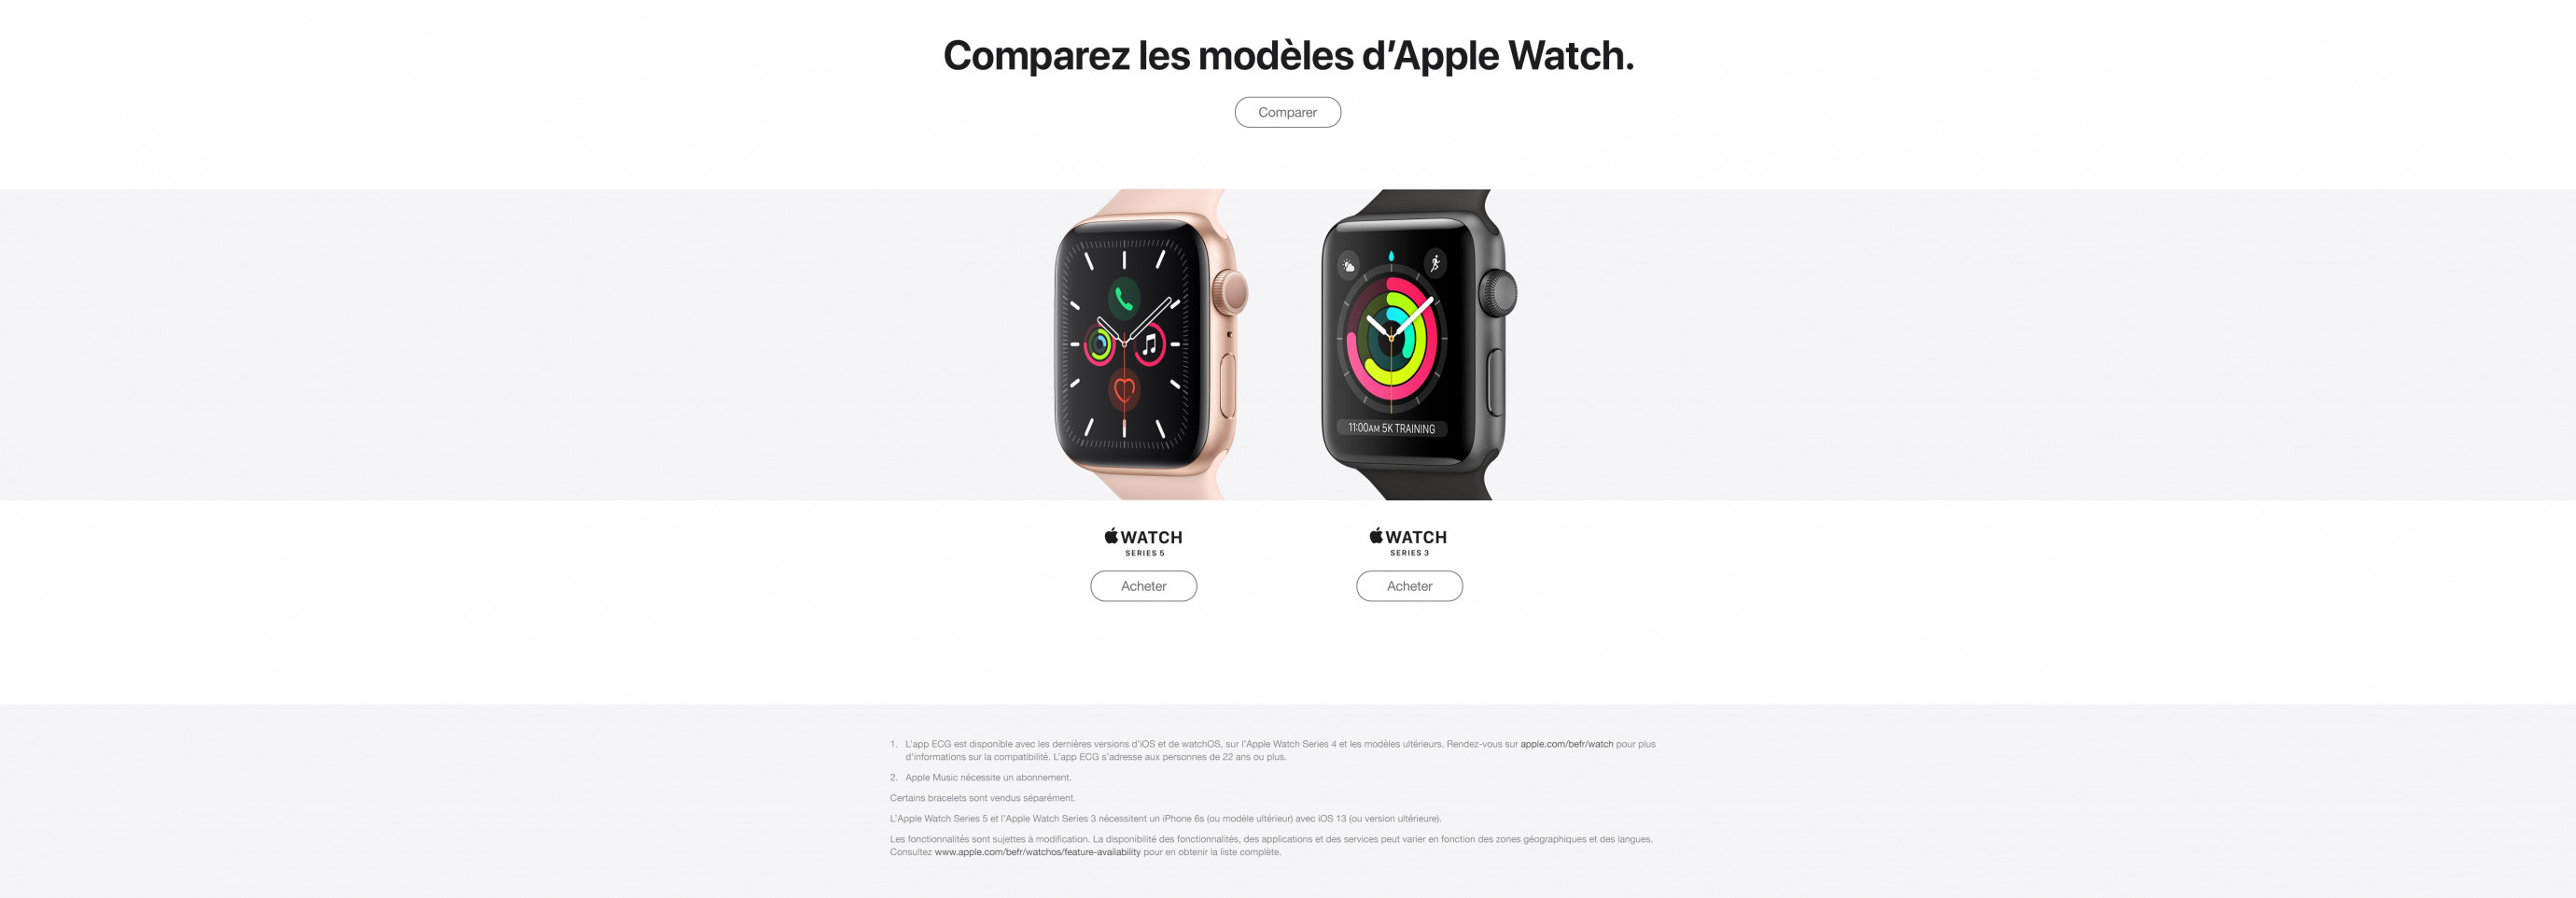 AppleWatchSeries5-productpage_fr_09.jpg